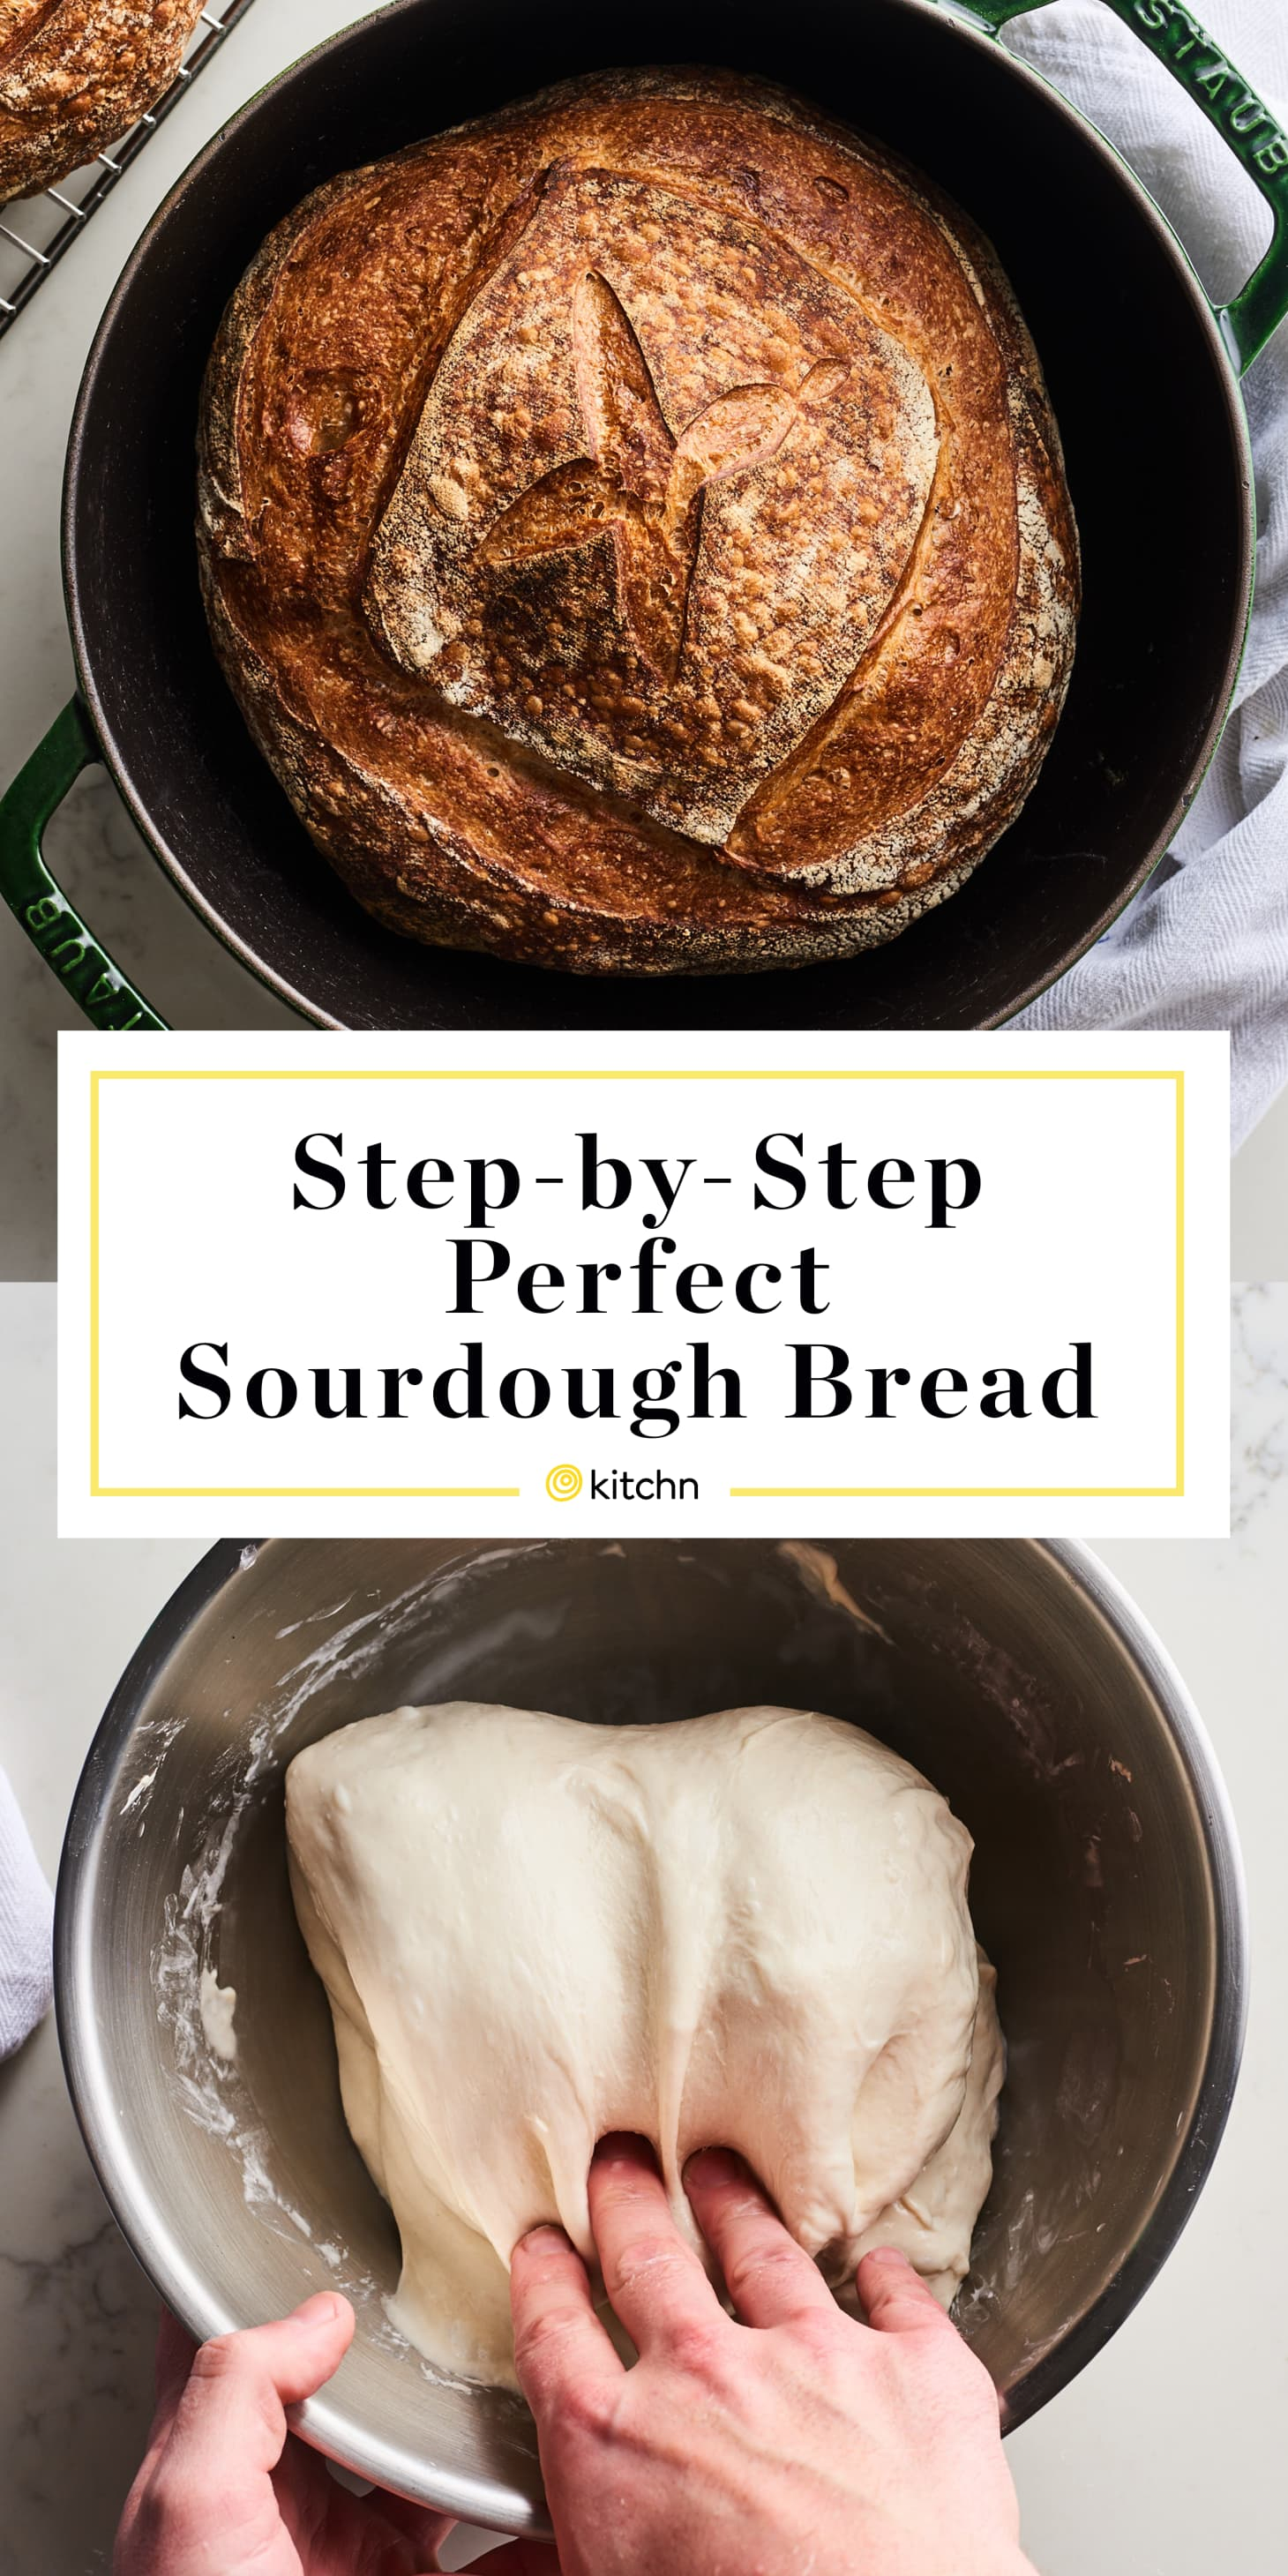 How To Make Sourdough Bread Kitchn